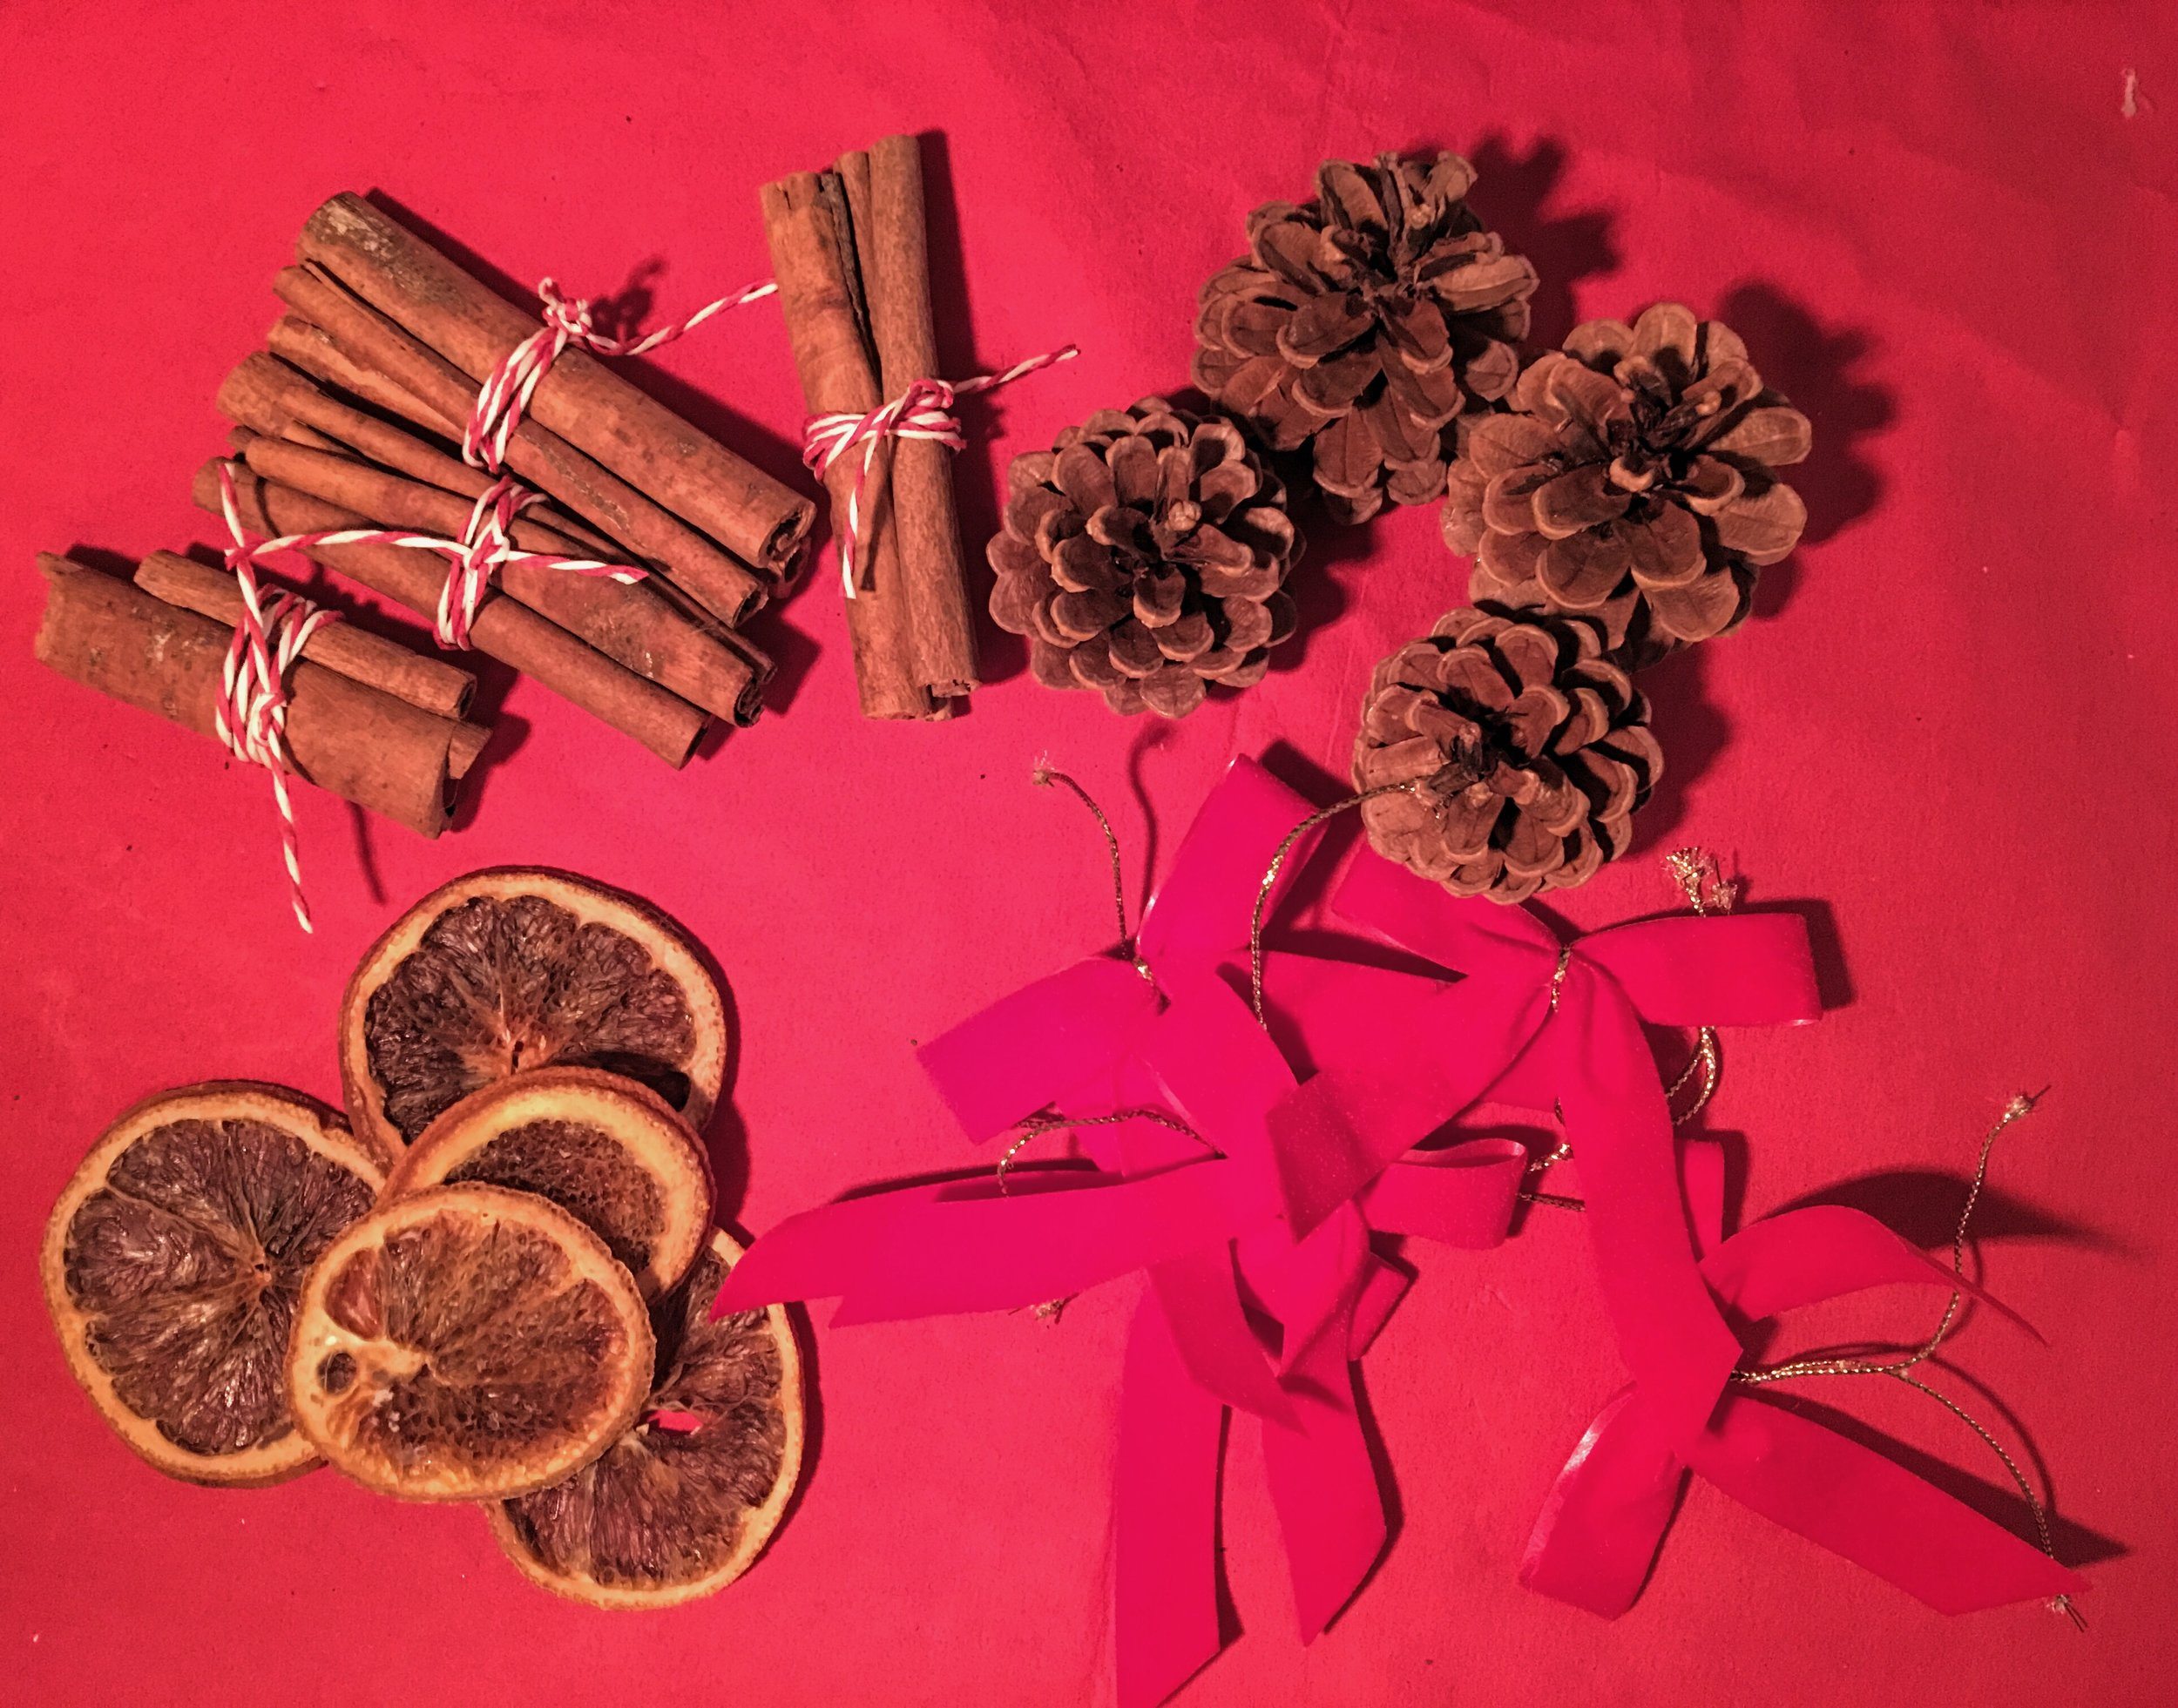 Along with your dehydrated orange slices and cinnamon sticks, use fir cones and red velvet bows.